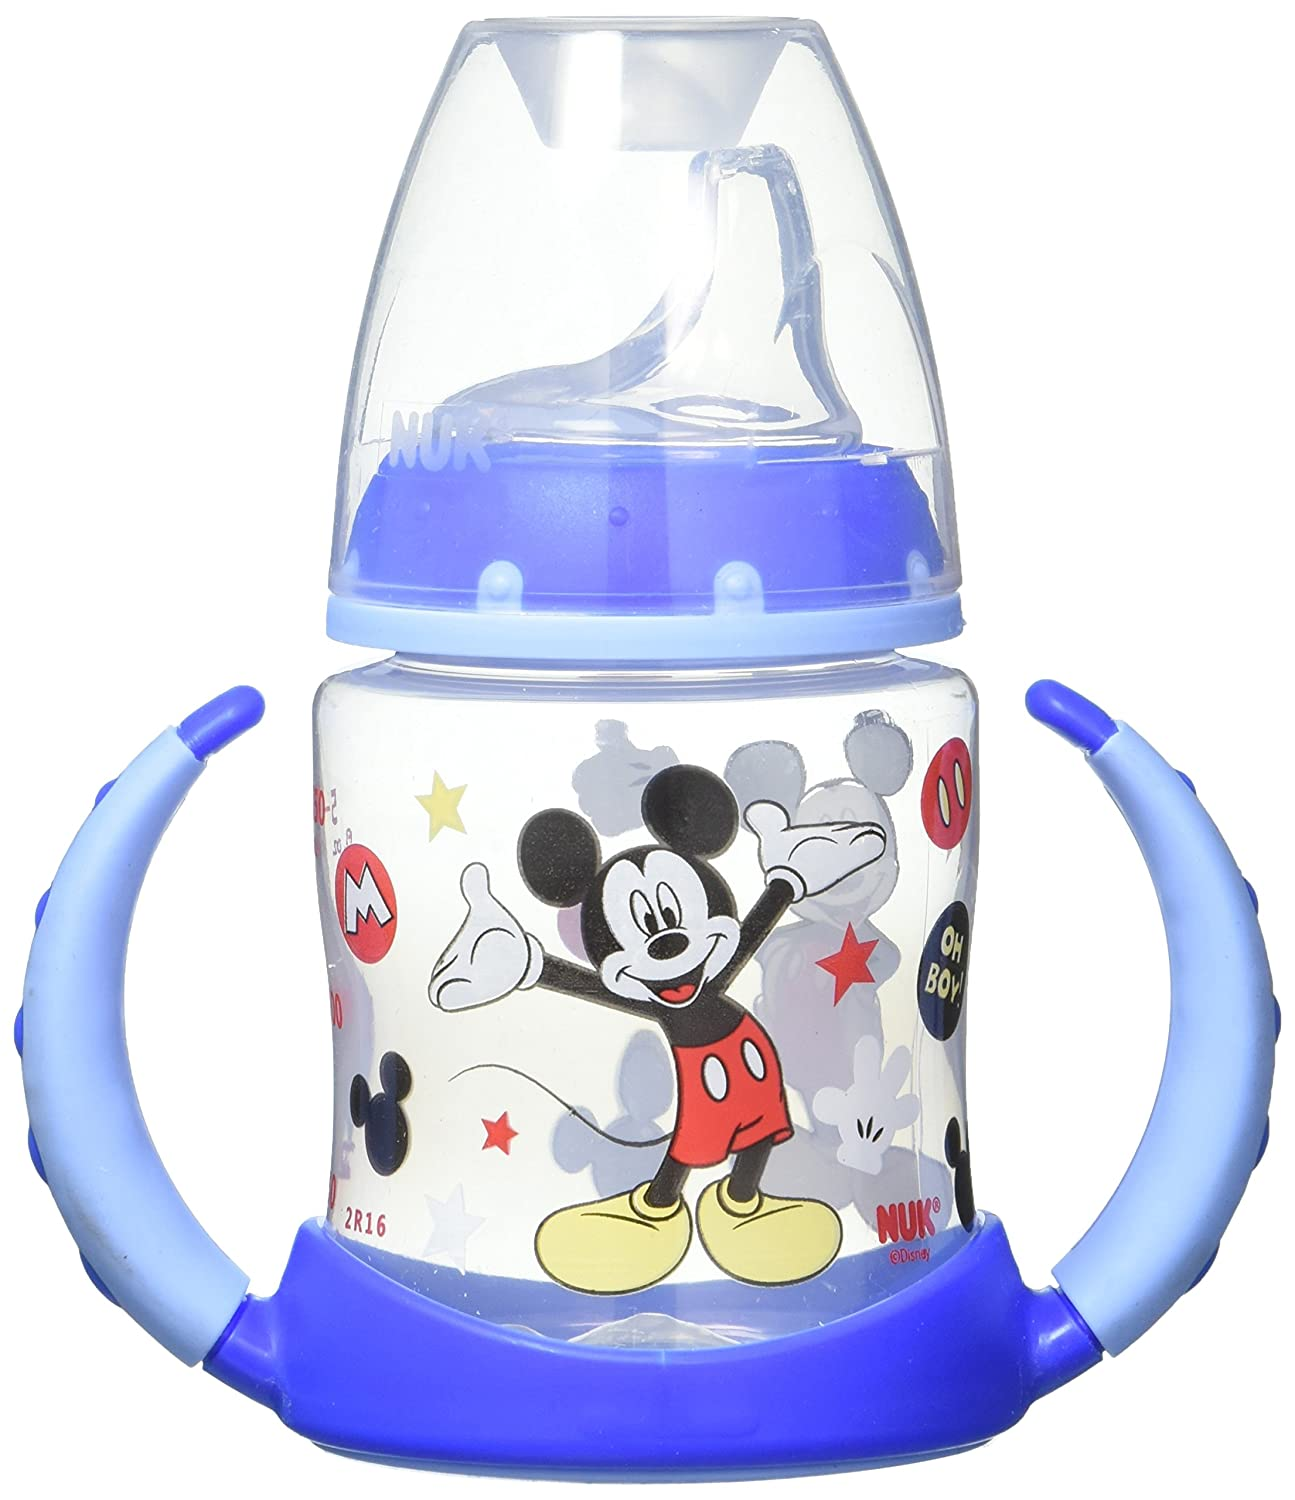 NUK Disney Learner Cup with Silicone Spout, Mickey Mouse, 5-Ounce 62047